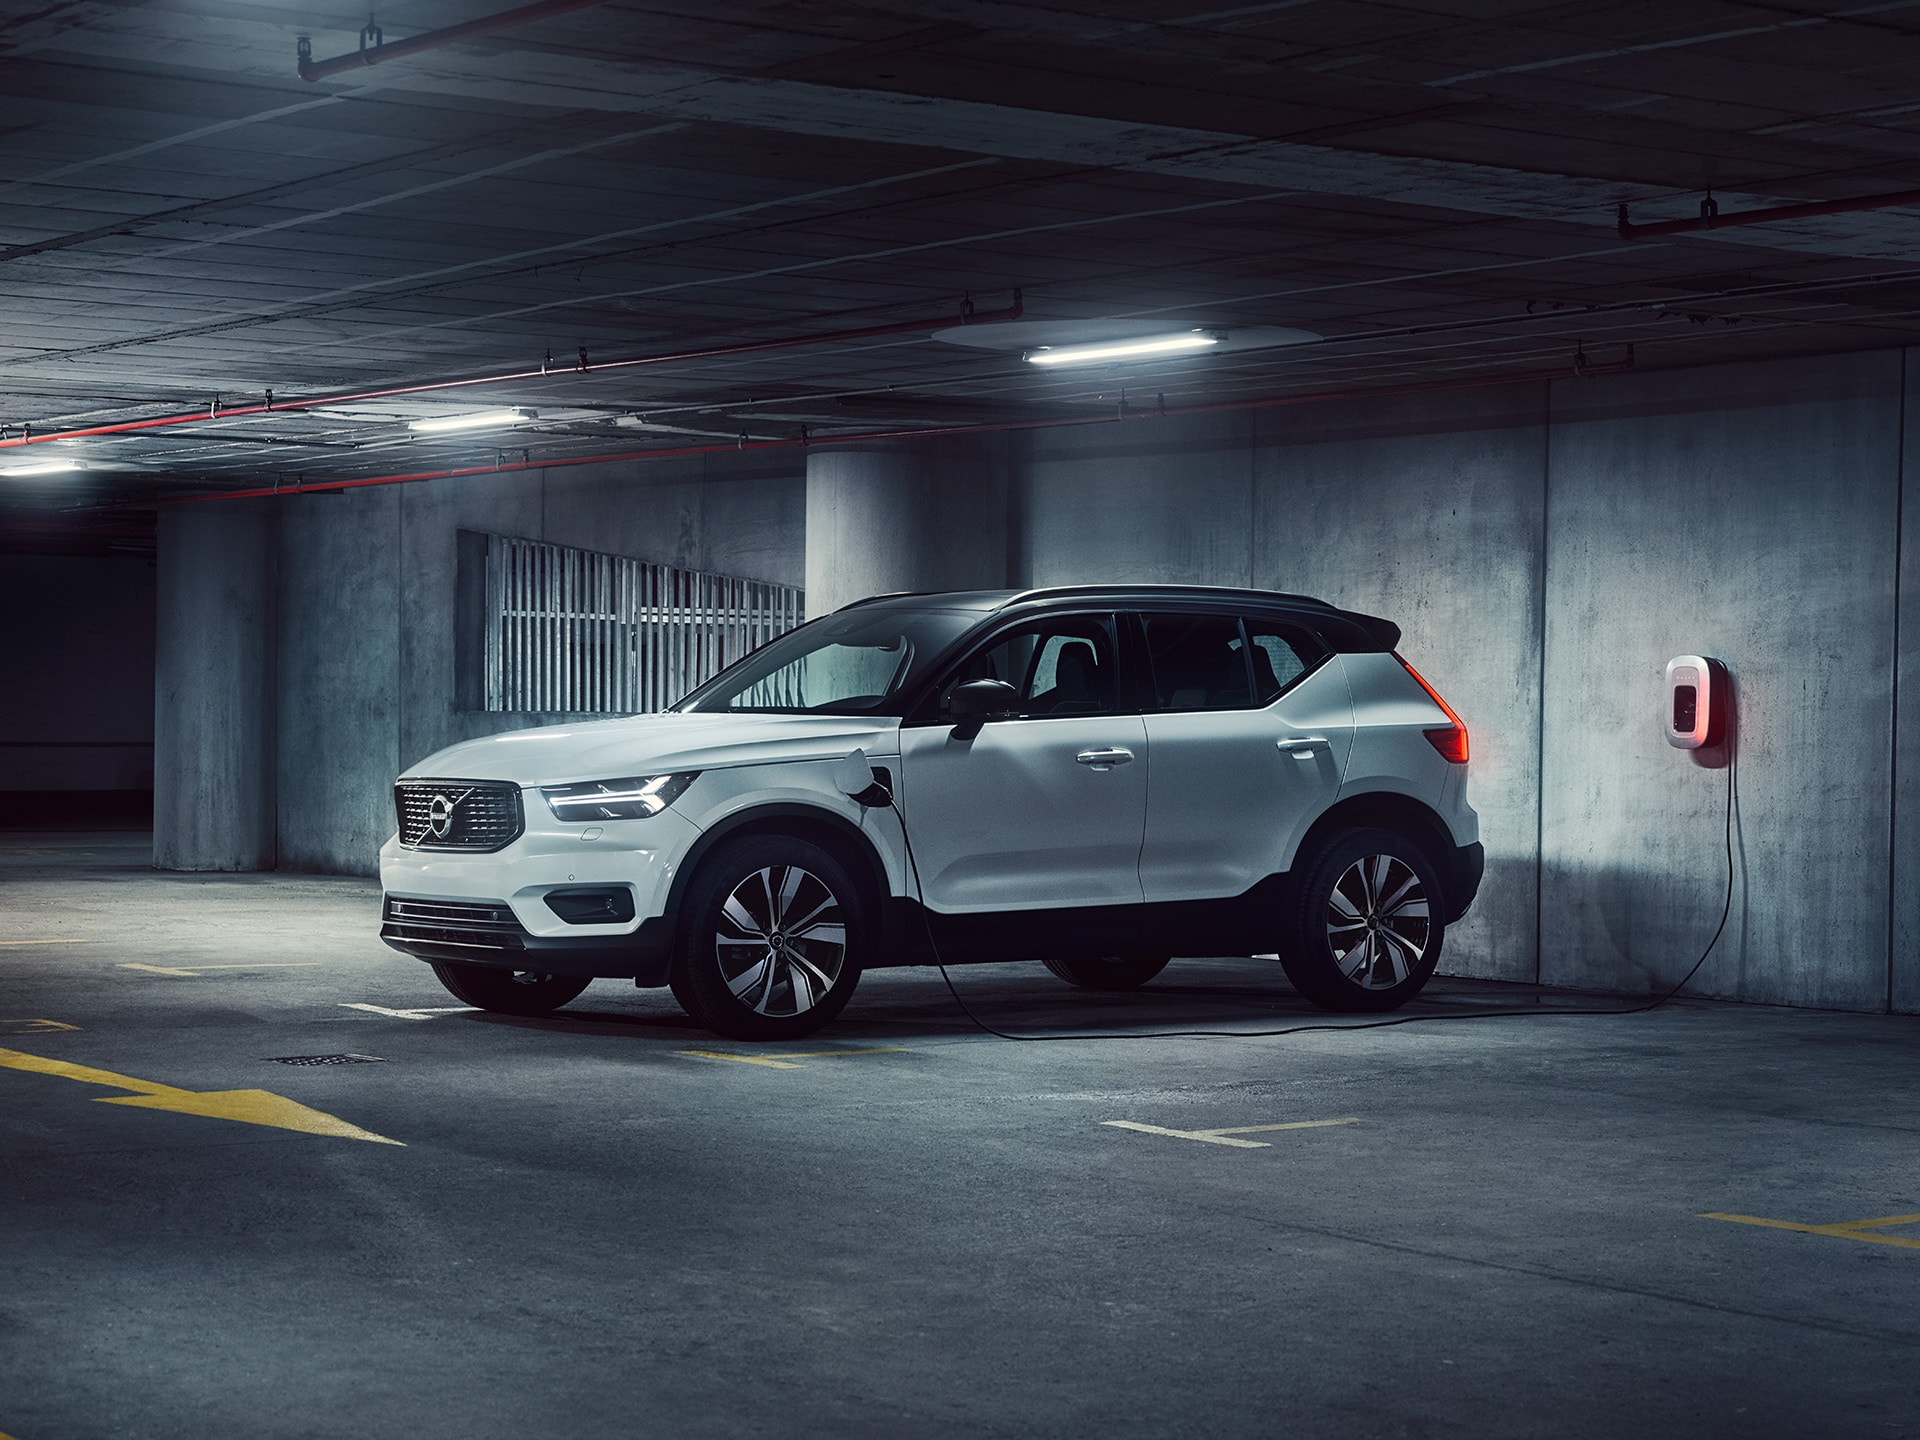 A white XC40 Recharge plug in hybrid SUV parked inside a garage and being charged.